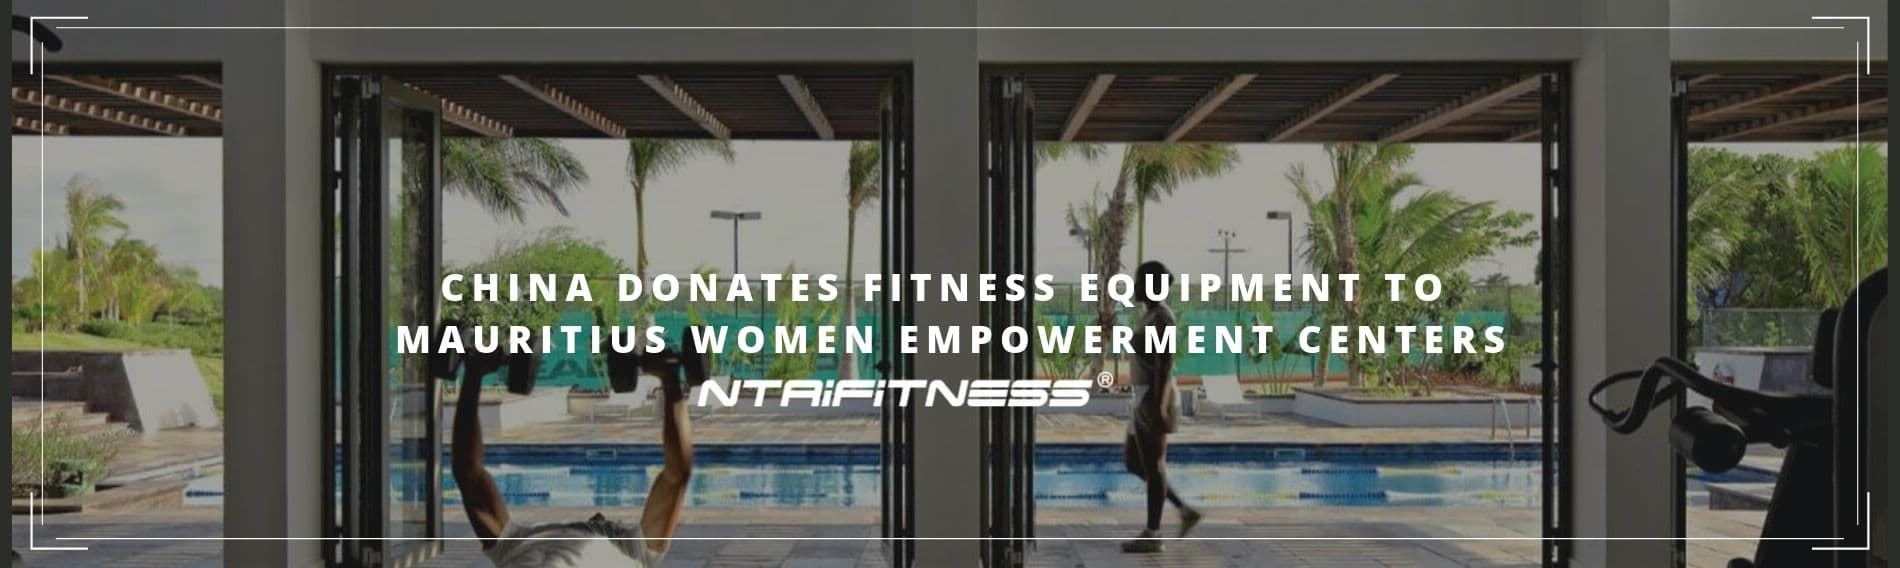 China Donates Fitness Equipment to Mauritius Women Empowerment Centers